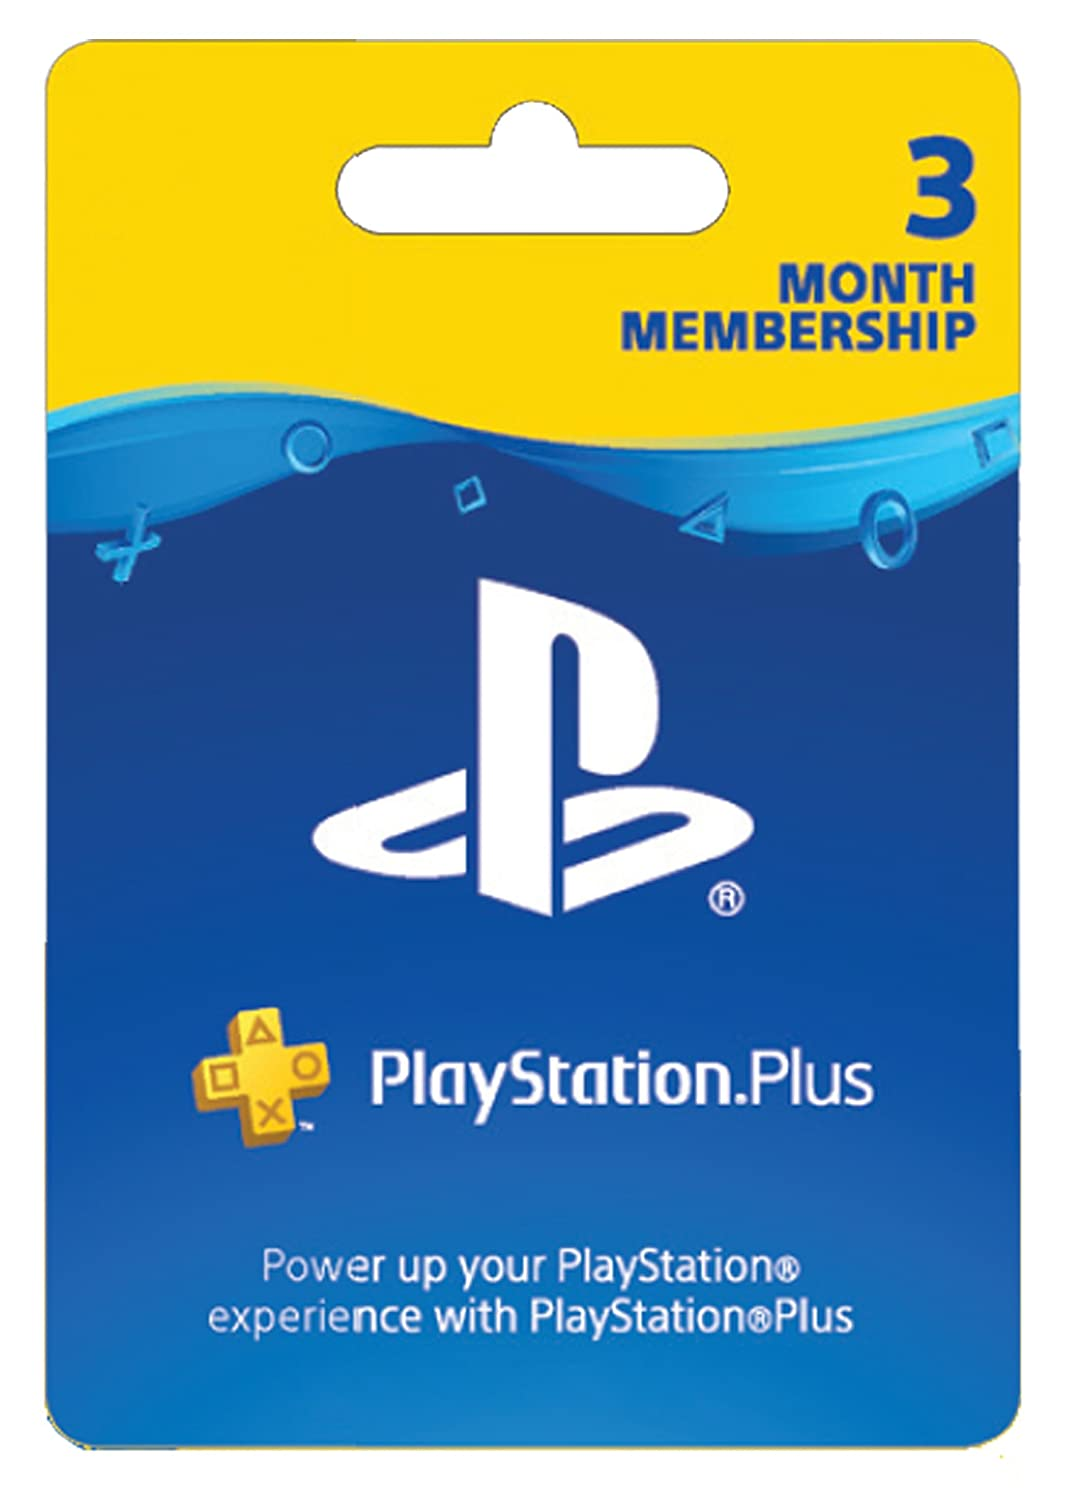 Sony PlayStation Plus: 12 Month Membership (Indian PSN